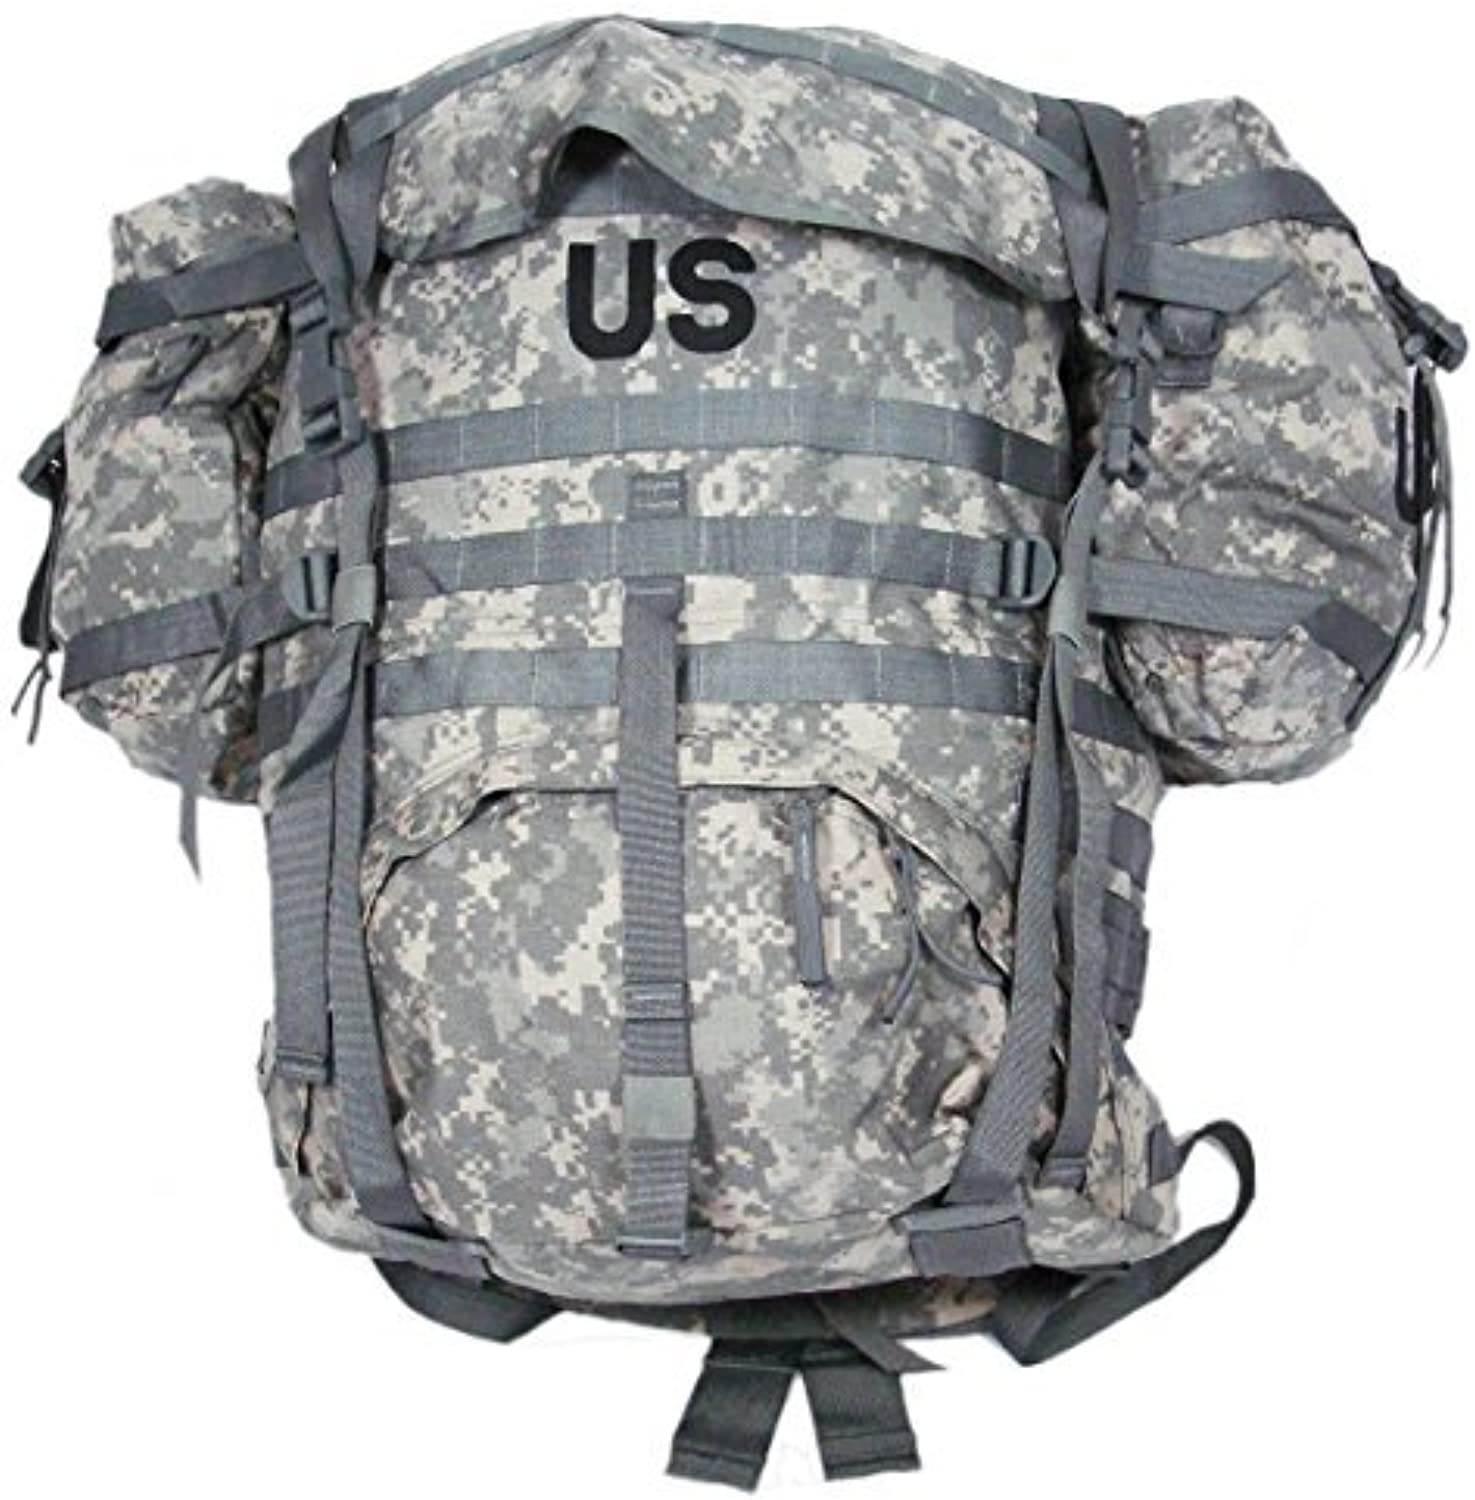 MOLLE II Rucksack Backpack Assembly (ACU), Large by MOLLE II